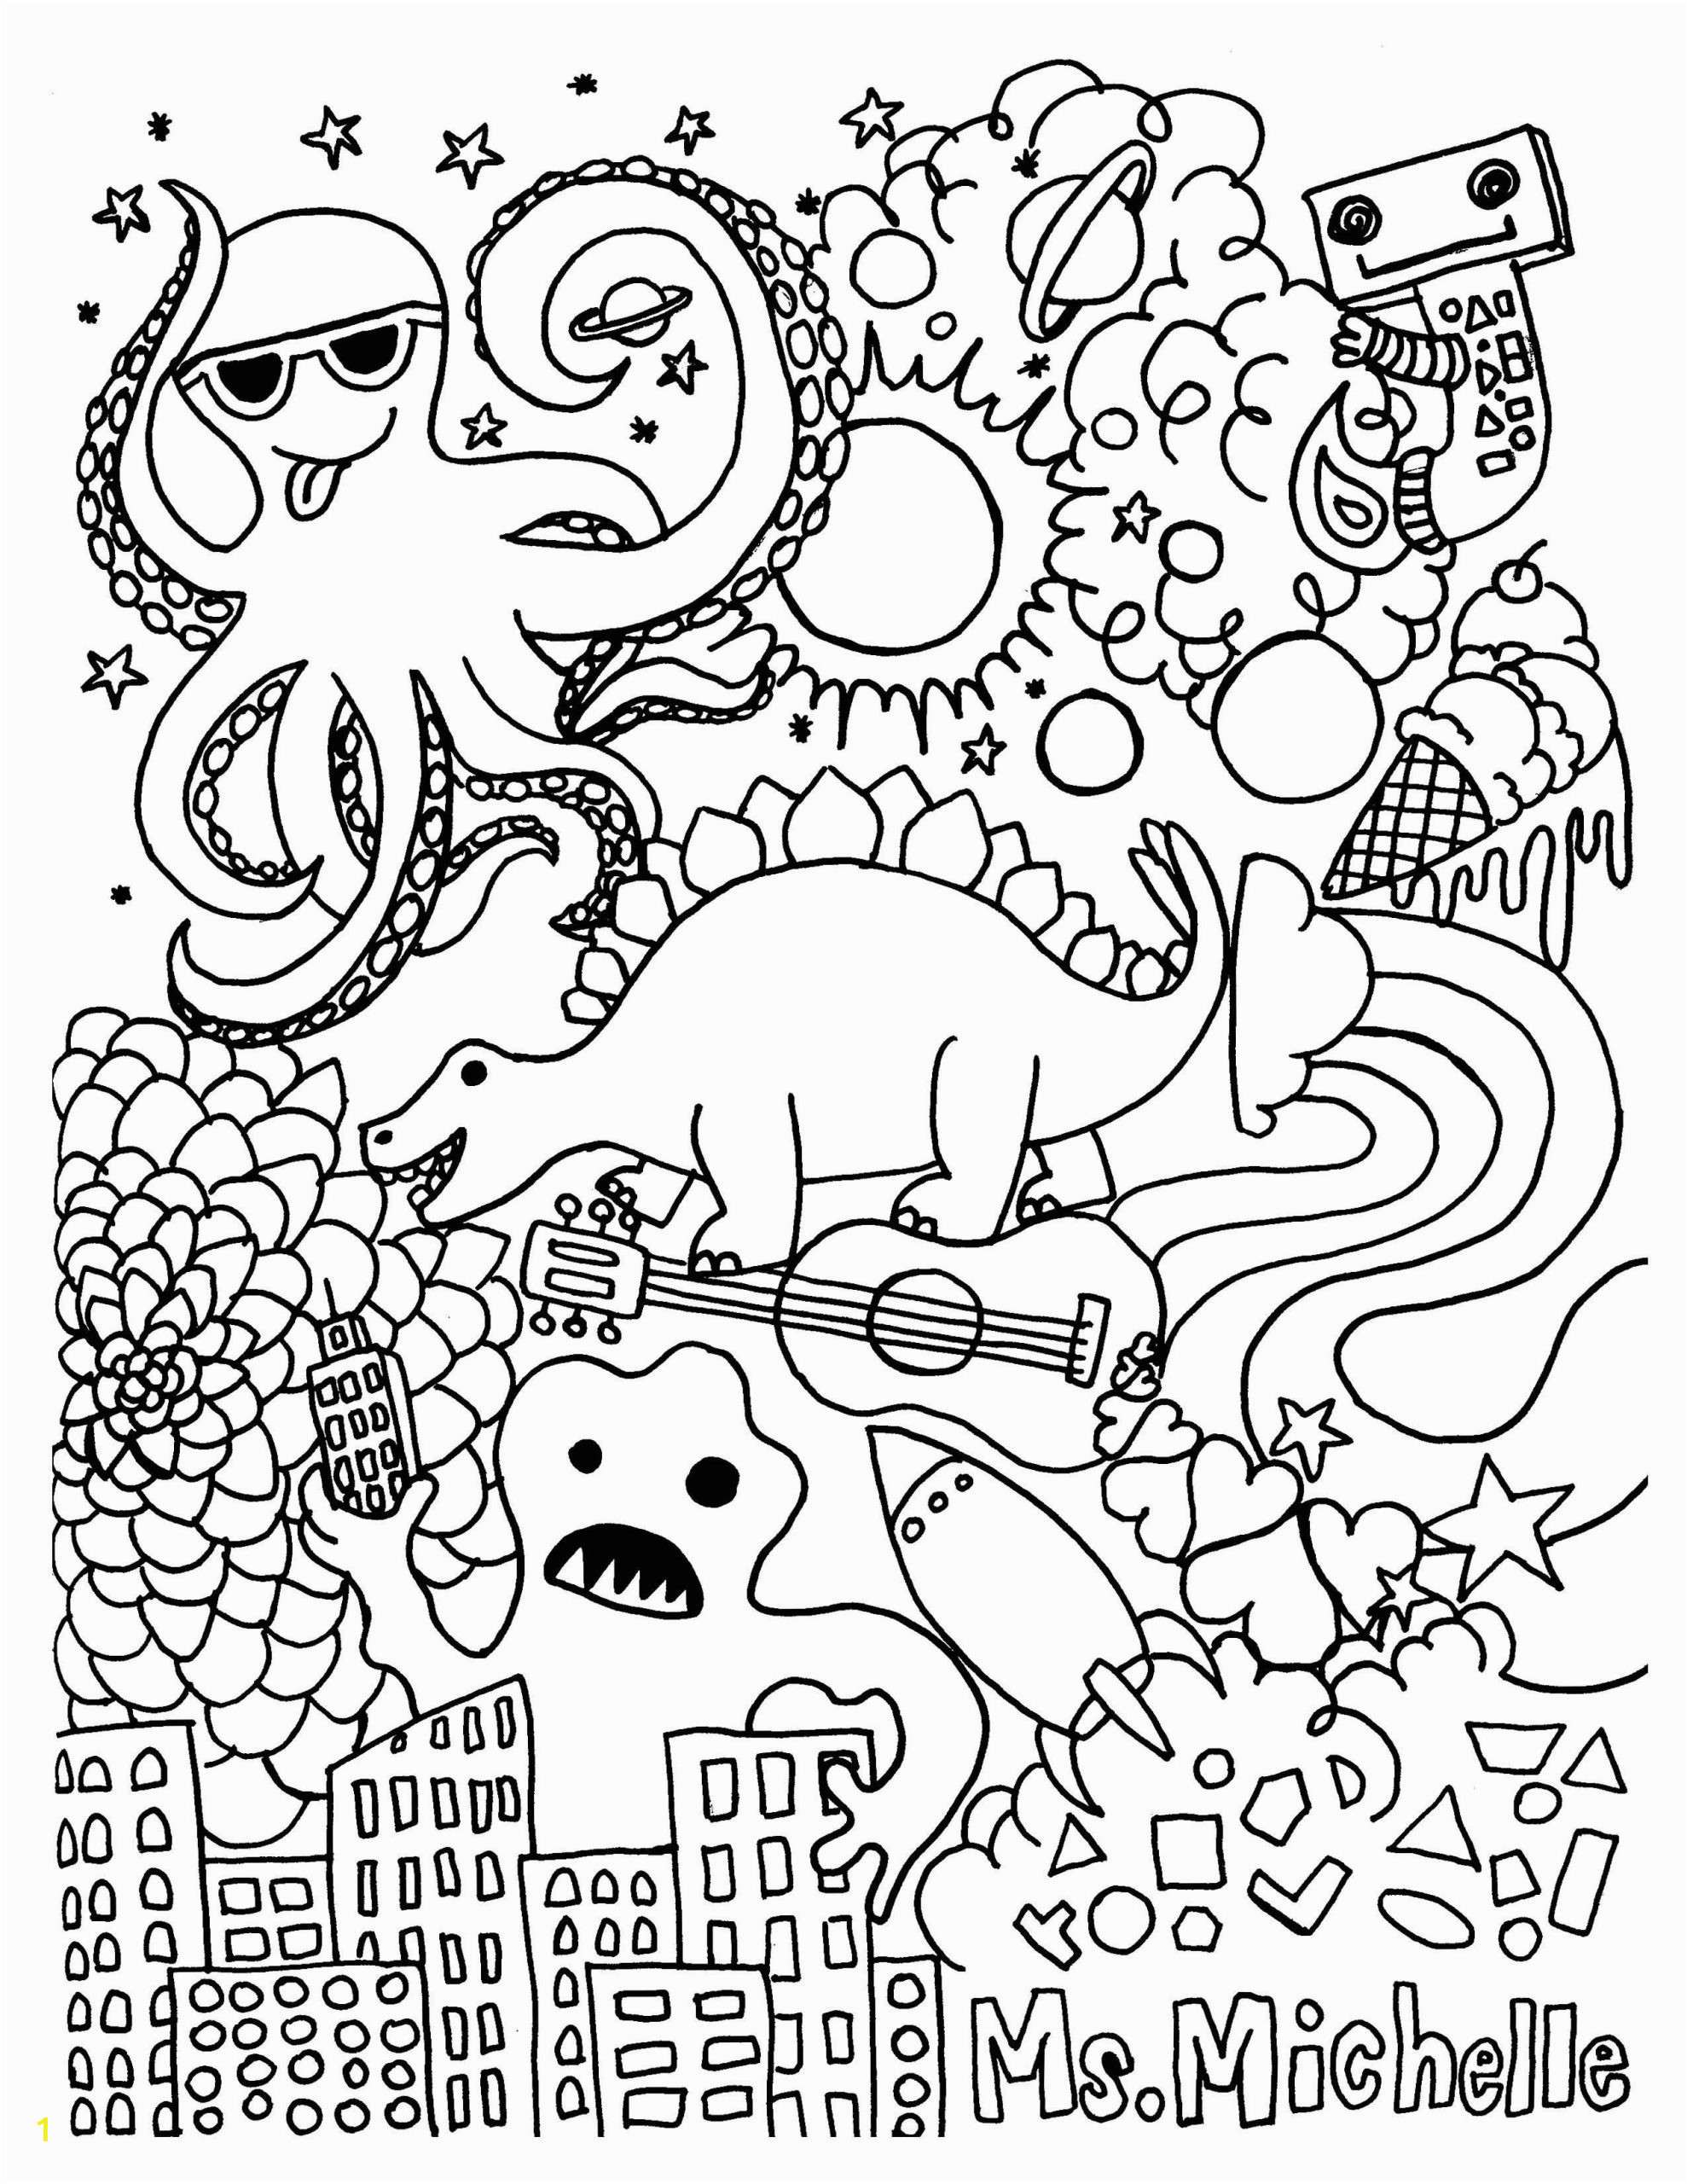 fruit of the spirit coloring page birthday pages for kids miraculous ladybug book adult to print owl colouring adults disney pantone scripture chicken spring popular jojo bible sheets scaled